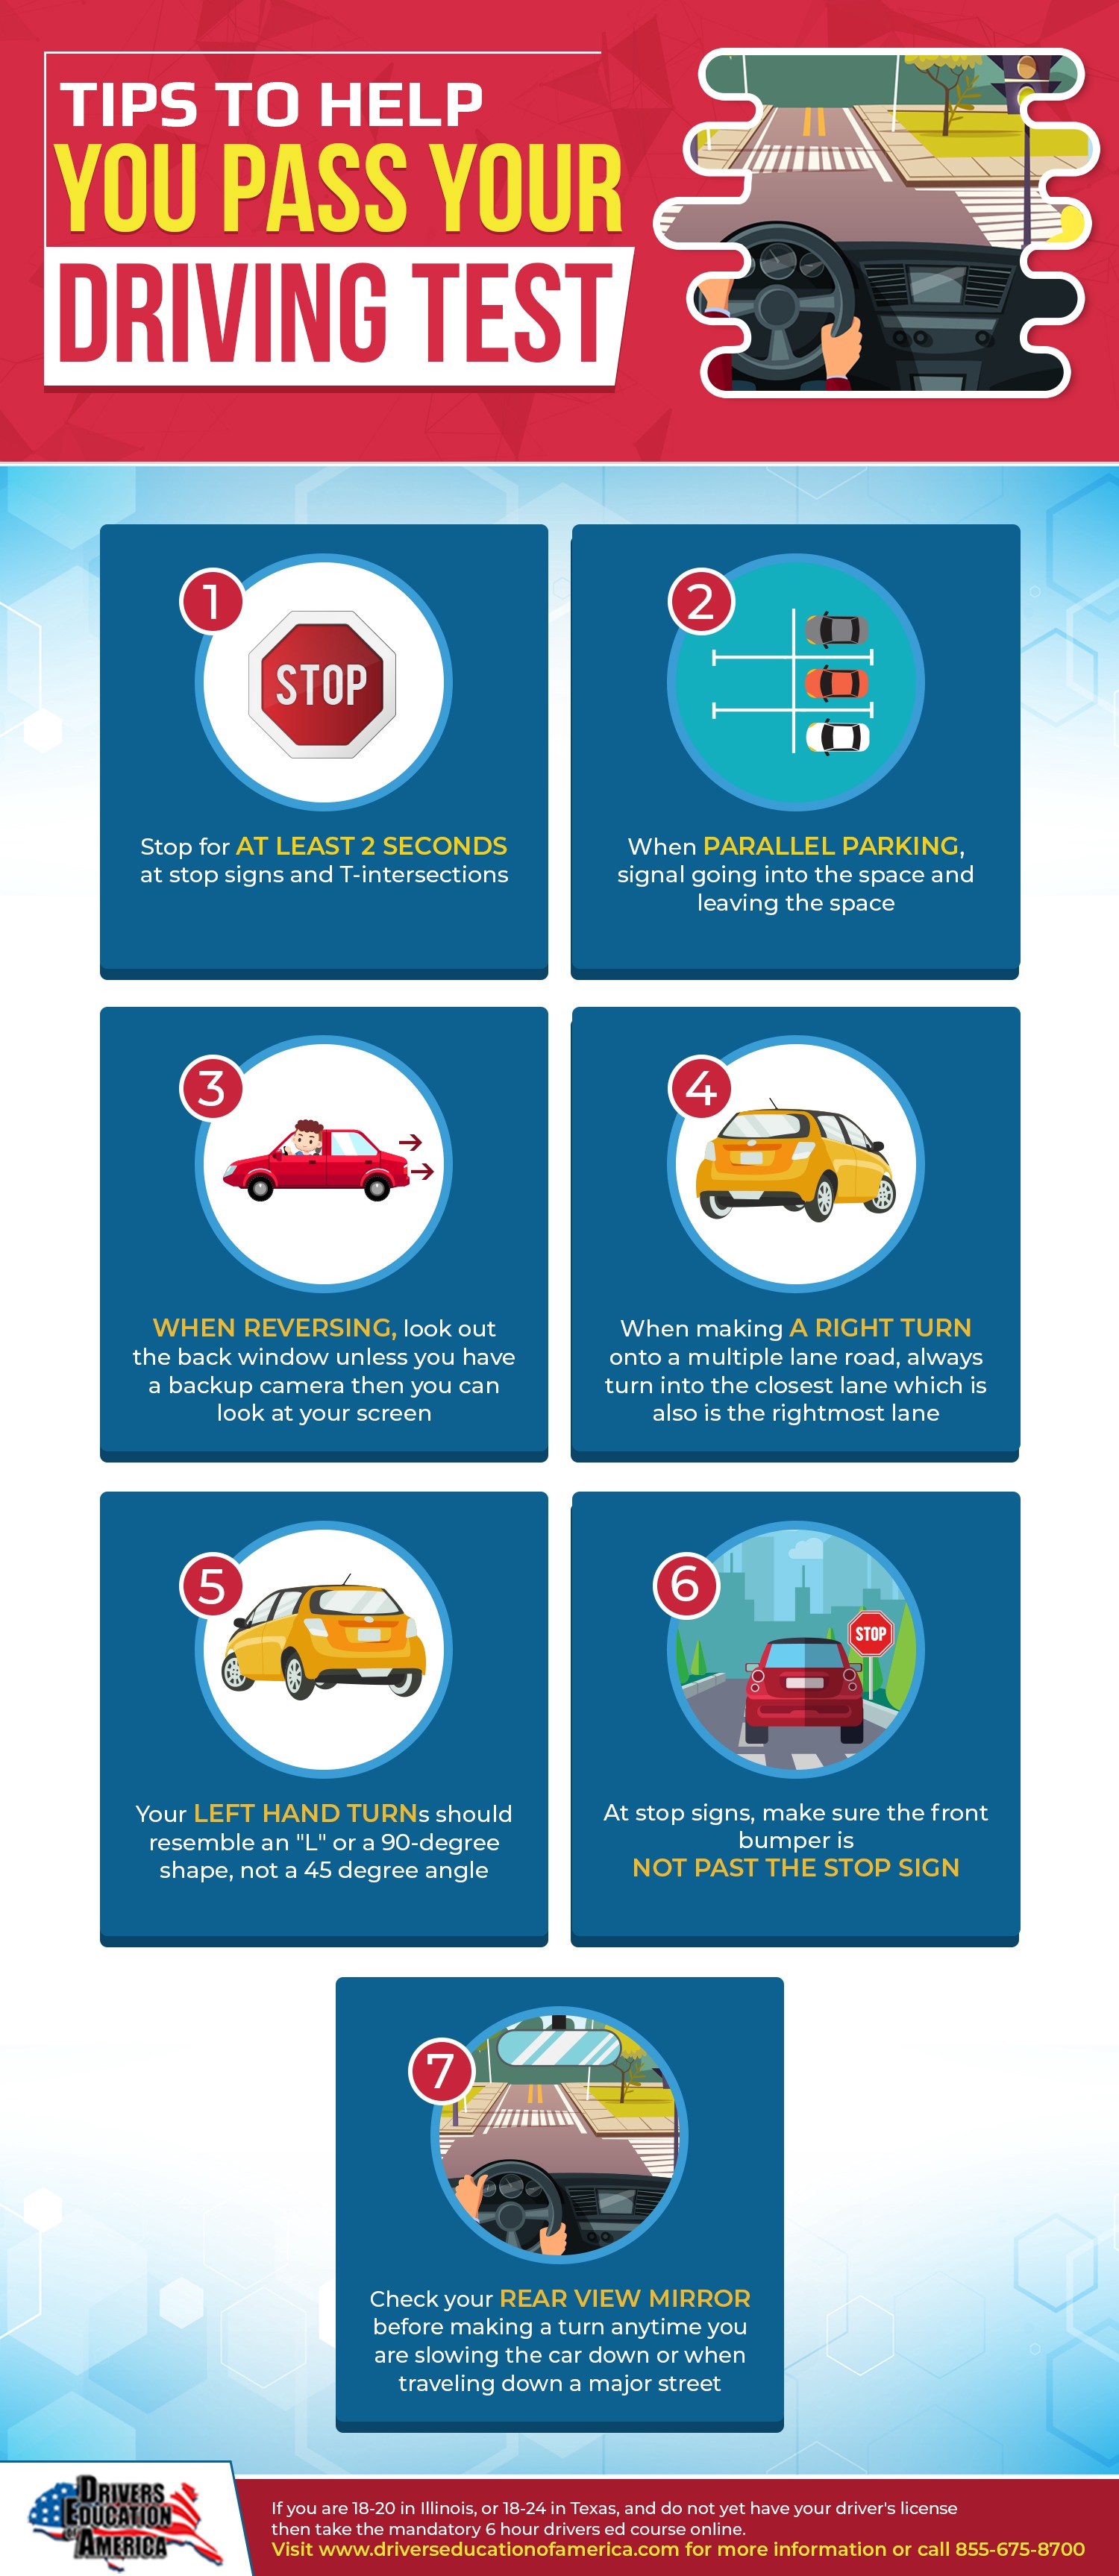 Tips To Help You Pass Your Driving Test [Infographic]